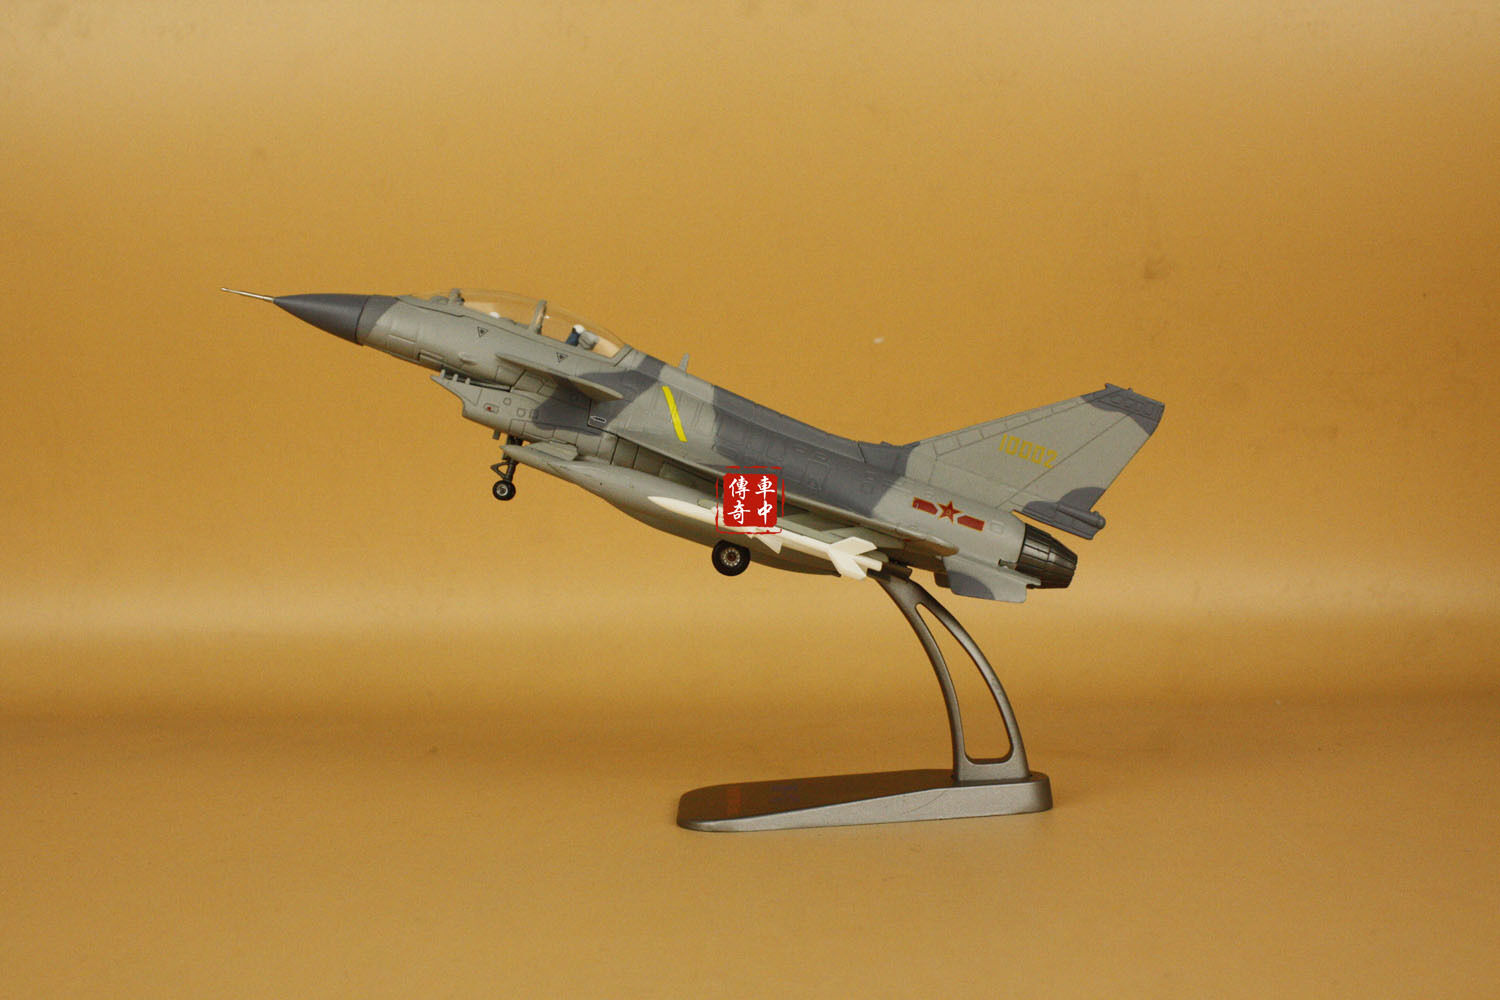 Details about 1/72 China Fighter plane J10 J 10 double seat